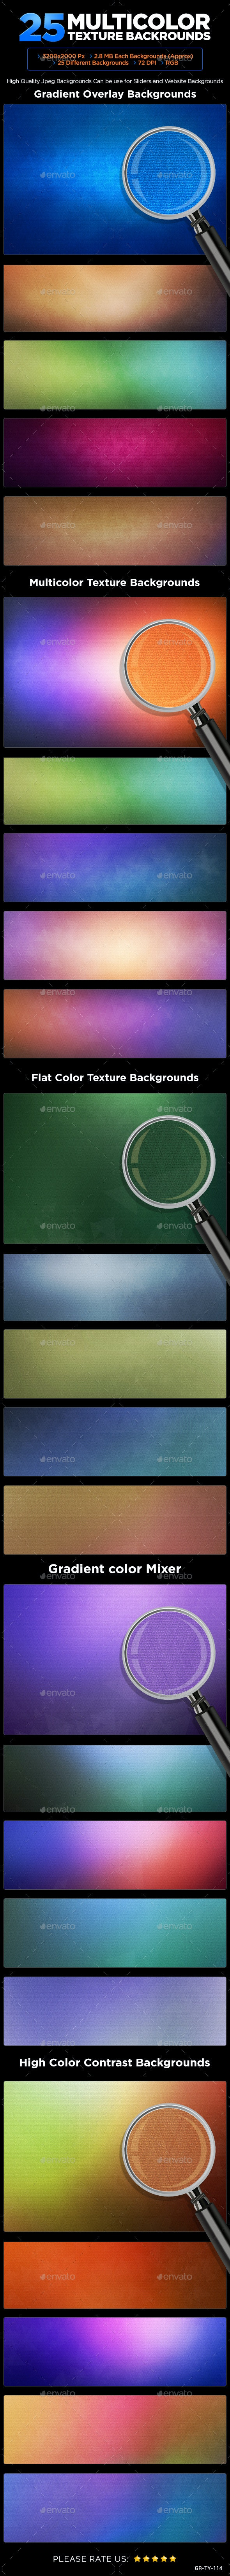 25 Multi Color Backgrounds - Backgrounds Graphics